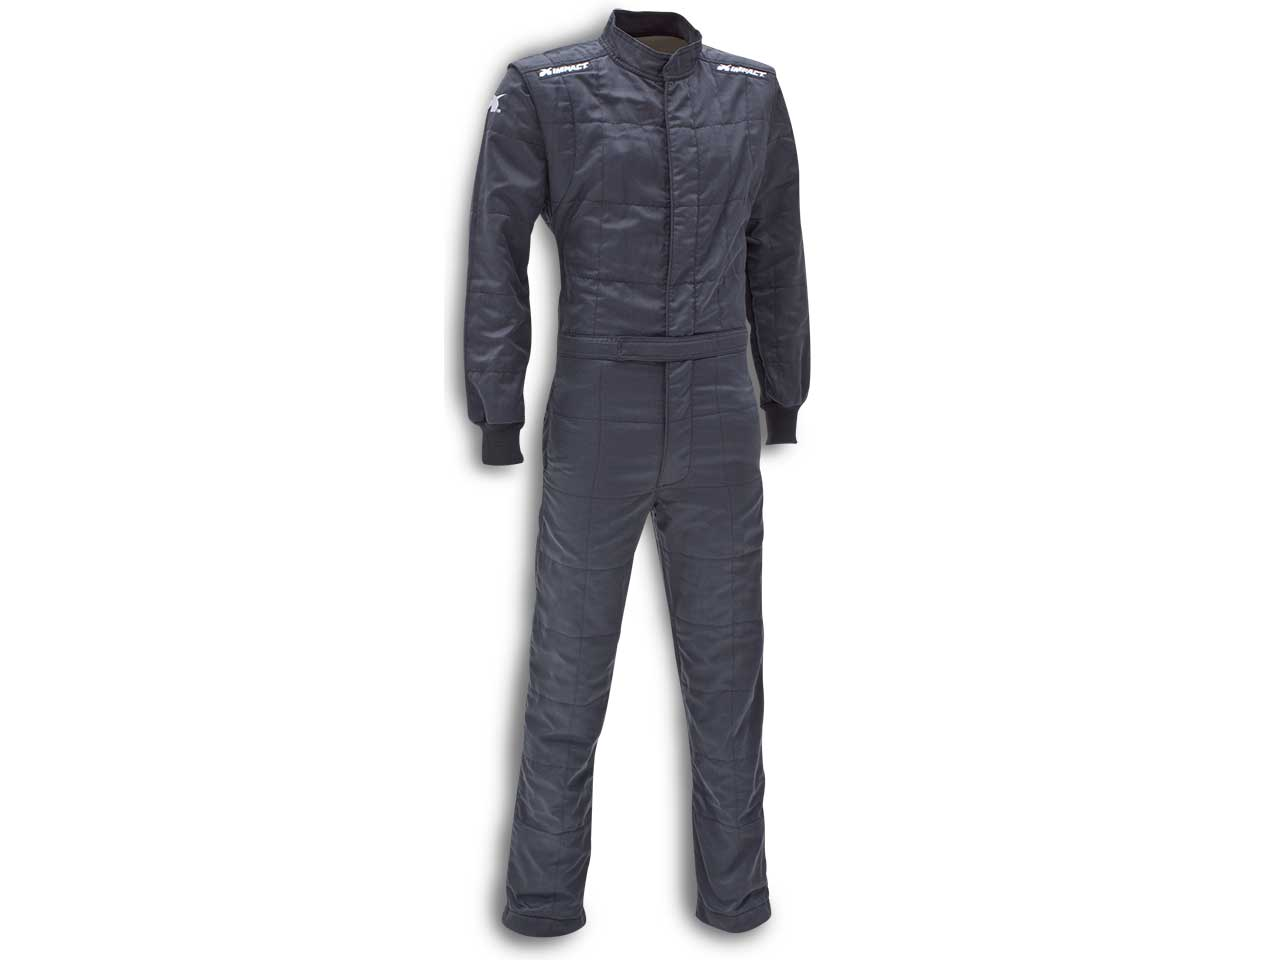 Impact Racer Driving Suit - BLACK - Medium